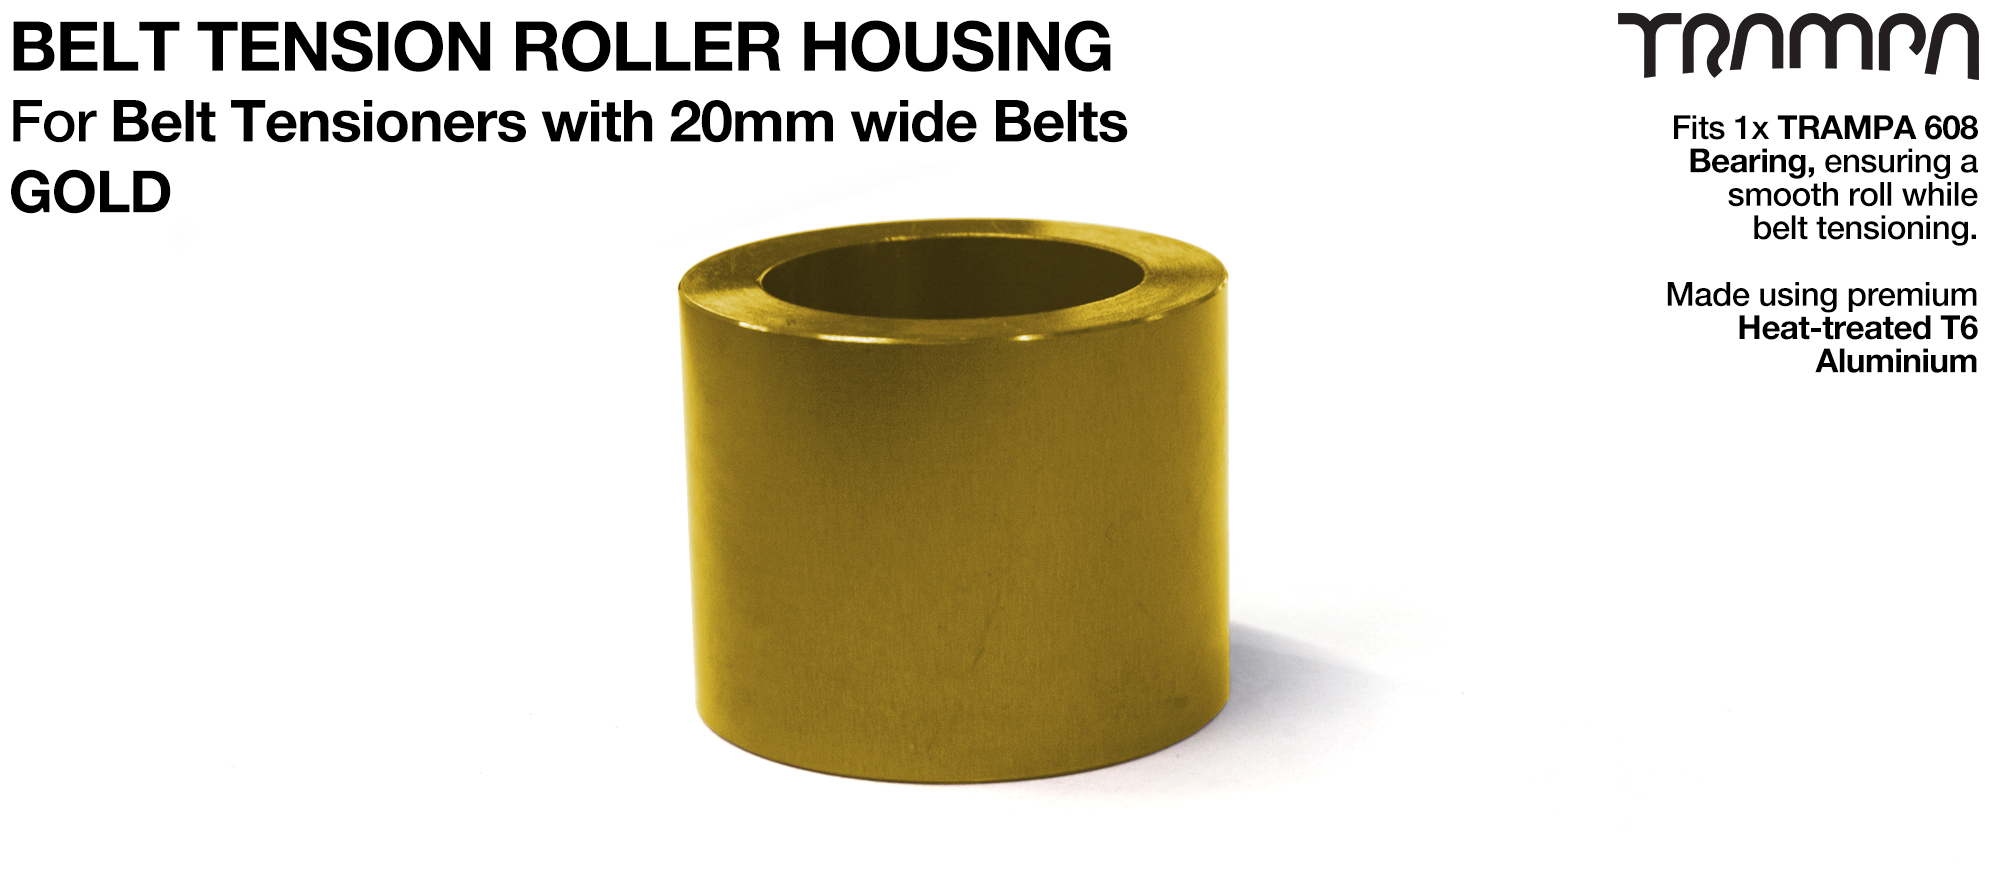 Belt Tension Roller Housing for 20mm Belts - GOLD